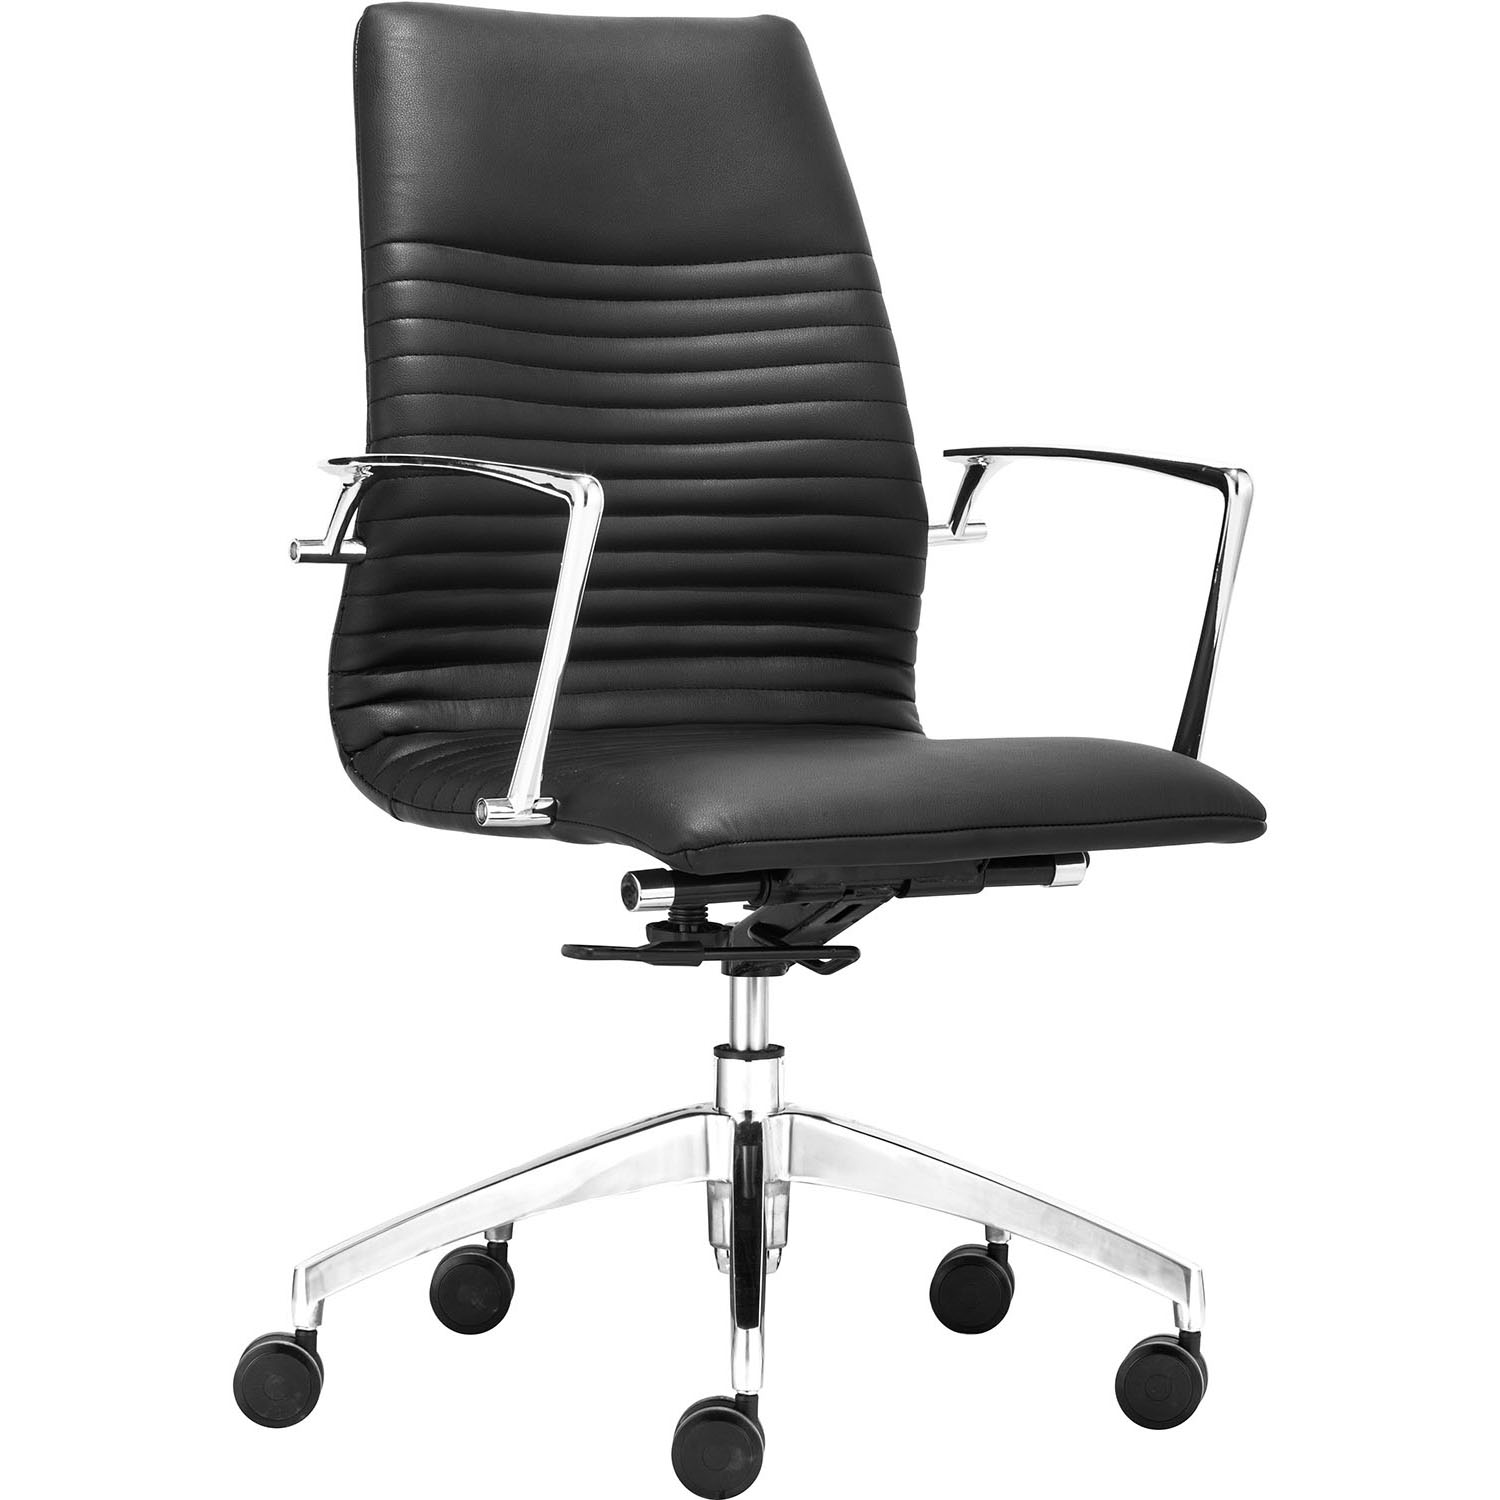 Lion Low Back Adjustable Rolling Office Armchair 206170, 206171